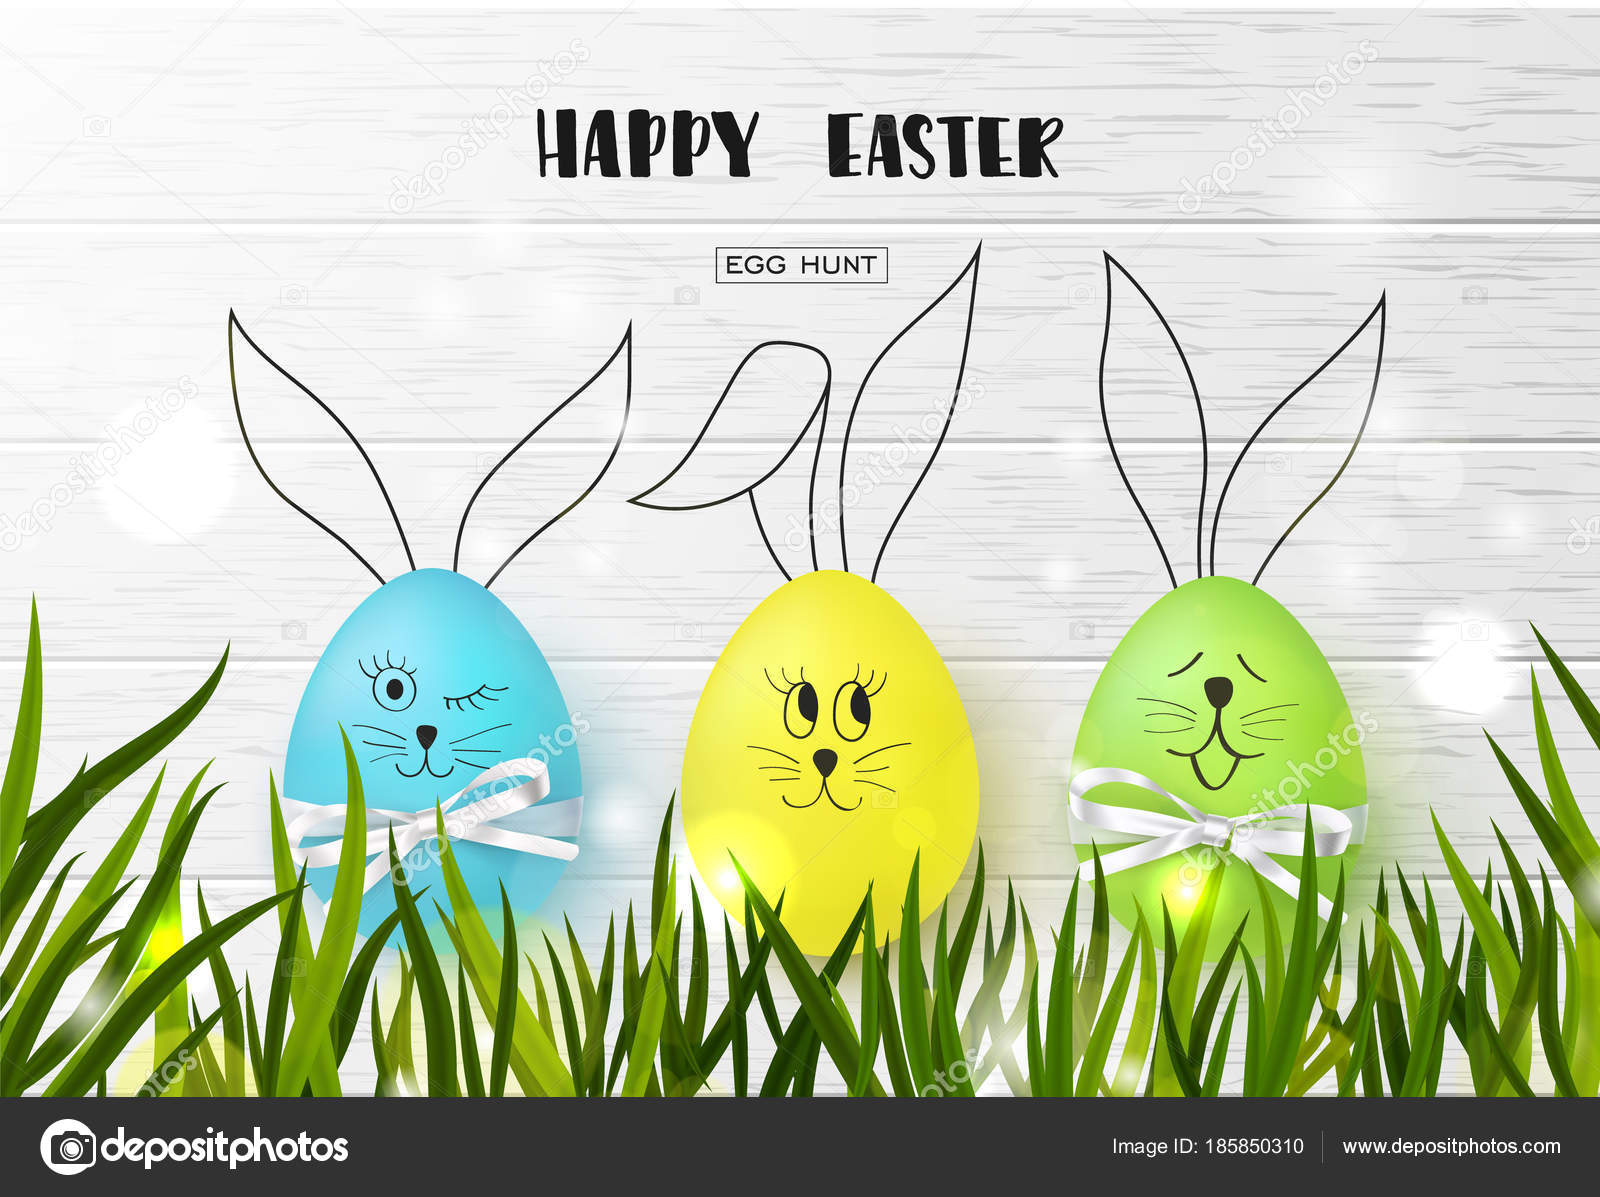 happy easter background with funny colorful eggs and grass on wooden texture egg hunt